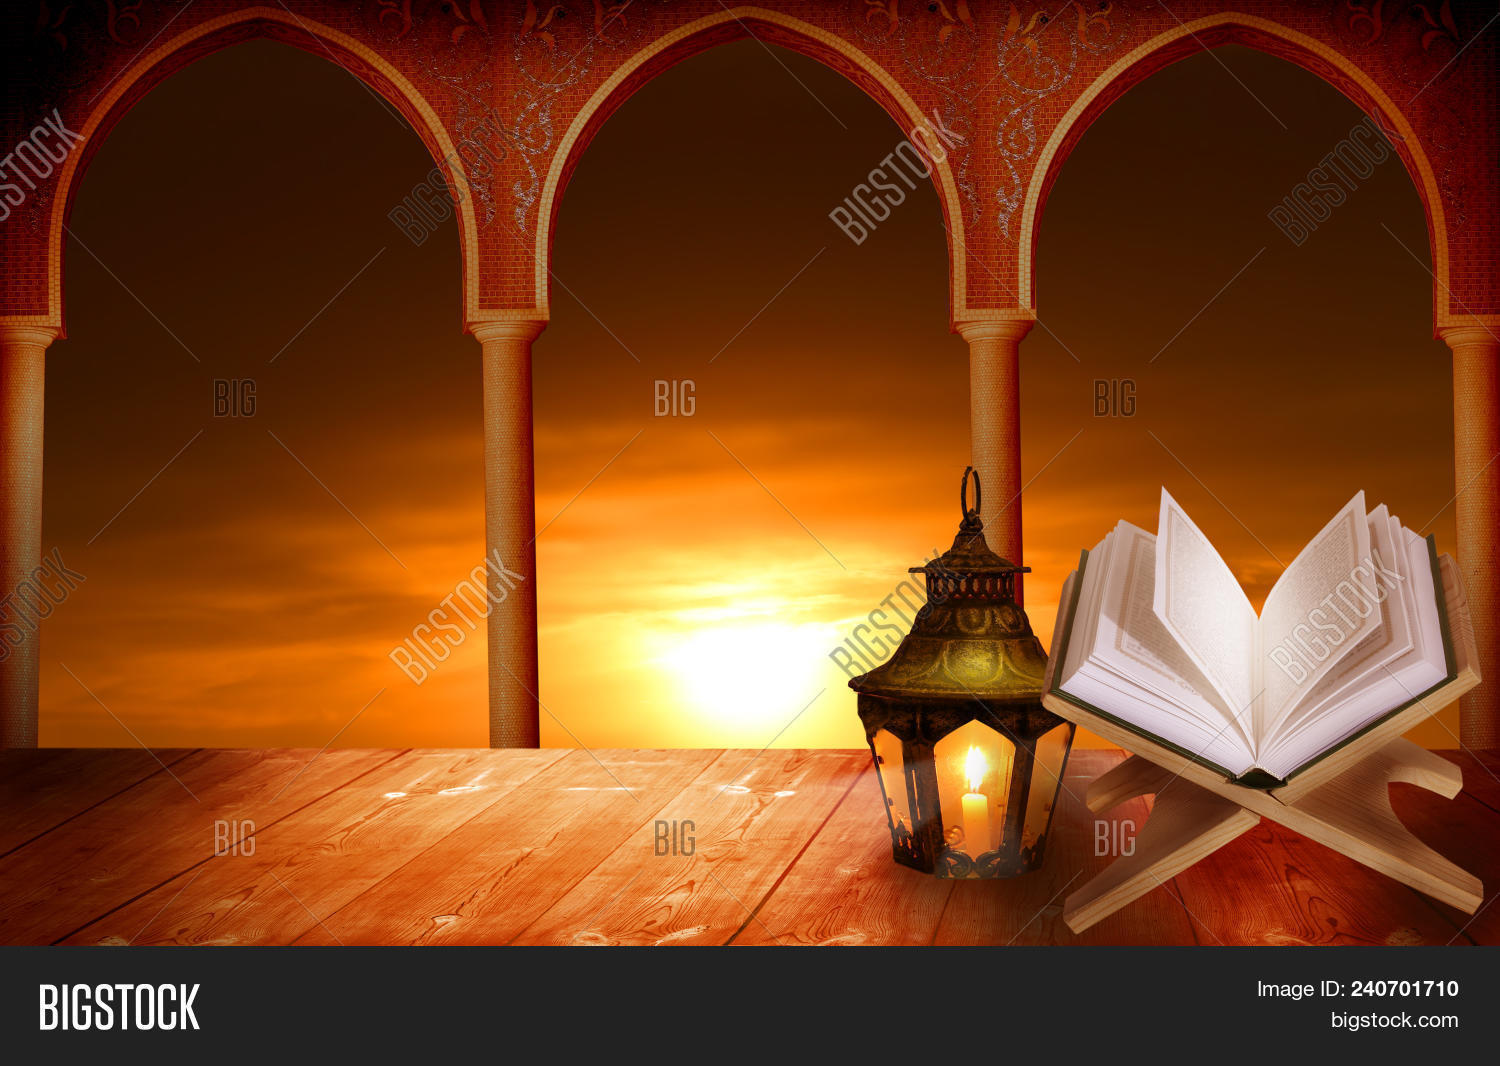 Islamic Greeting Cards Image Photo Free Trial Bigstock